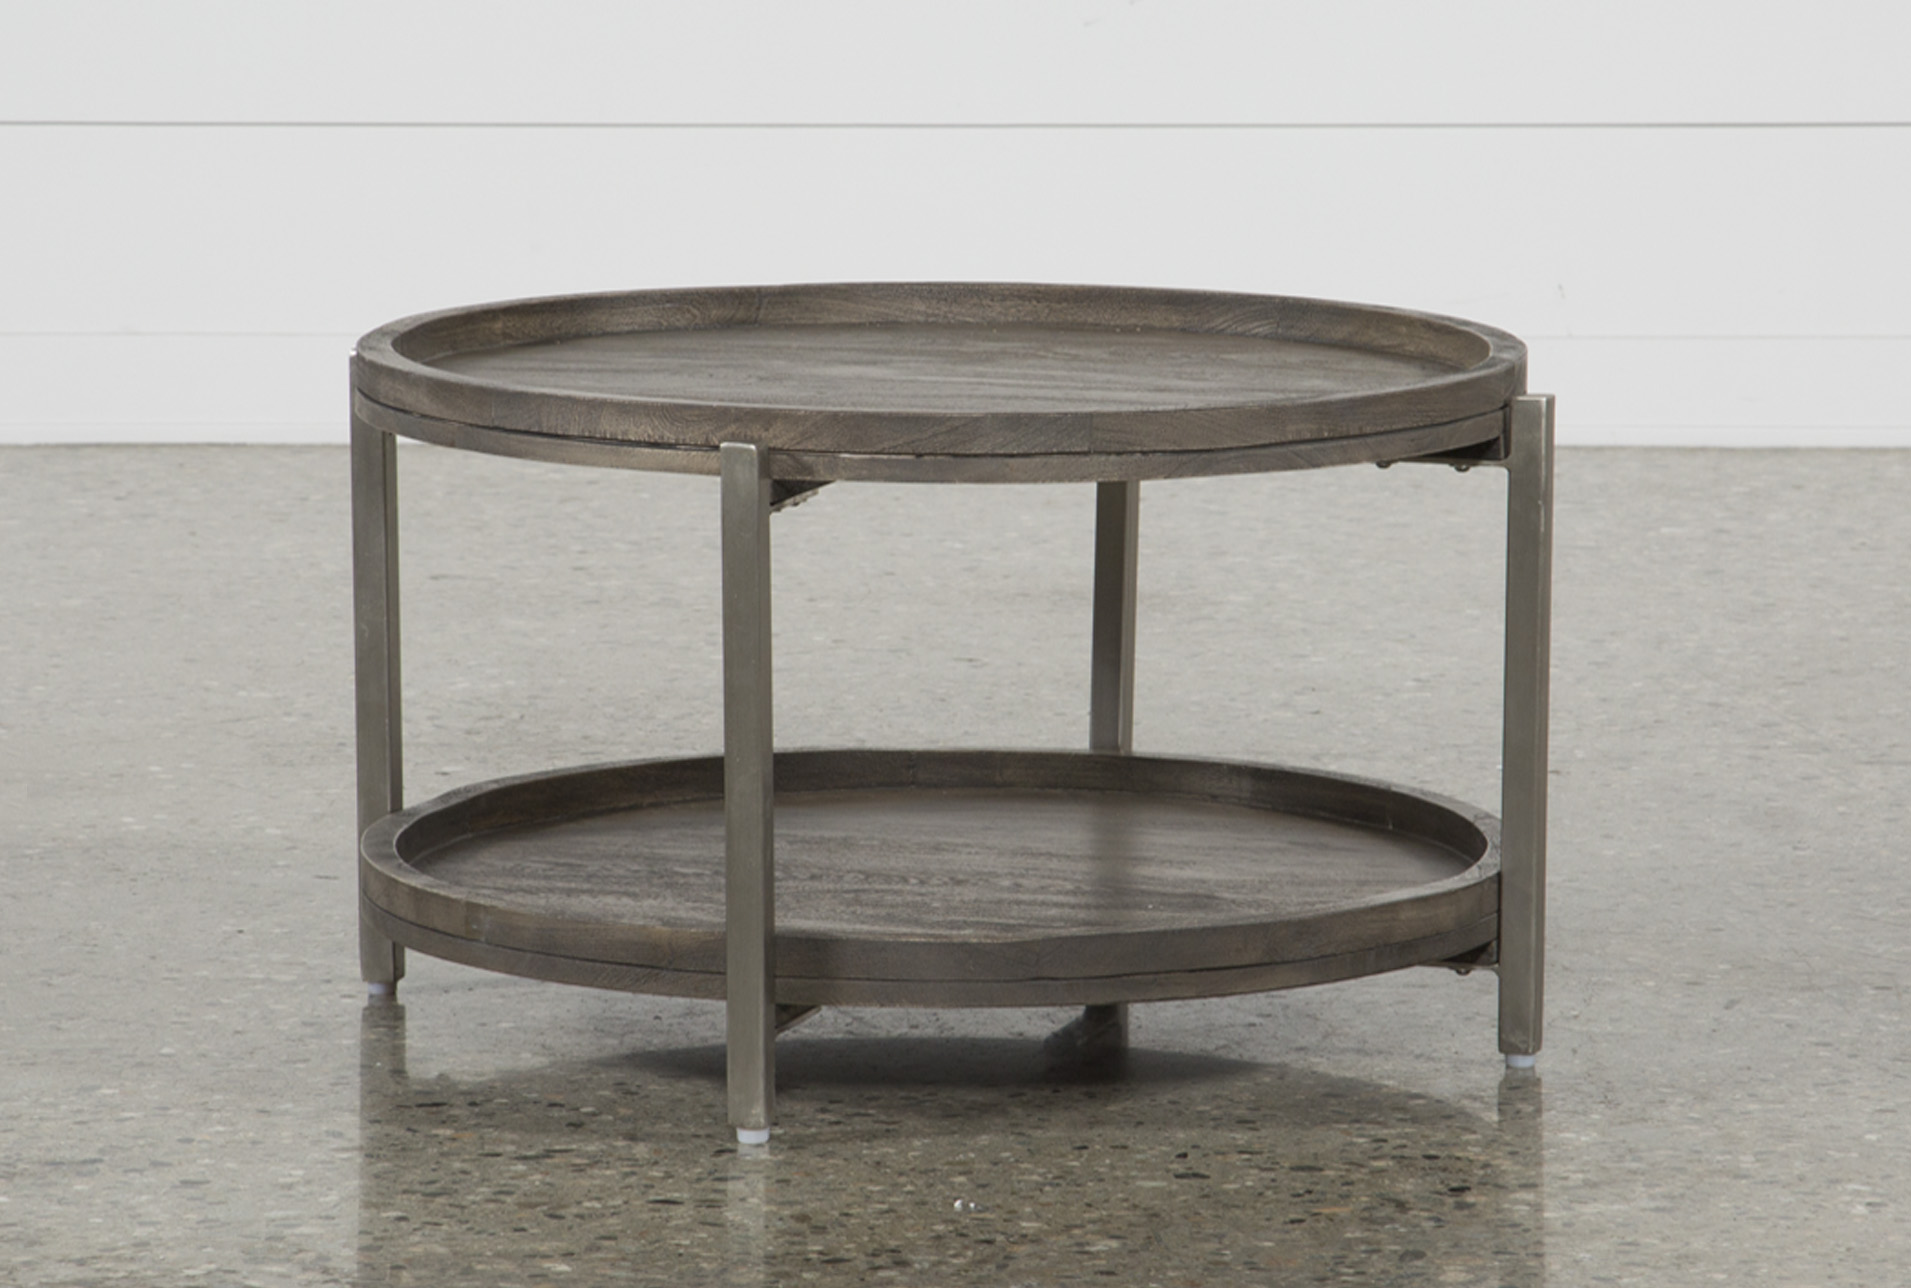 Attractive Swell Round Coffee Table